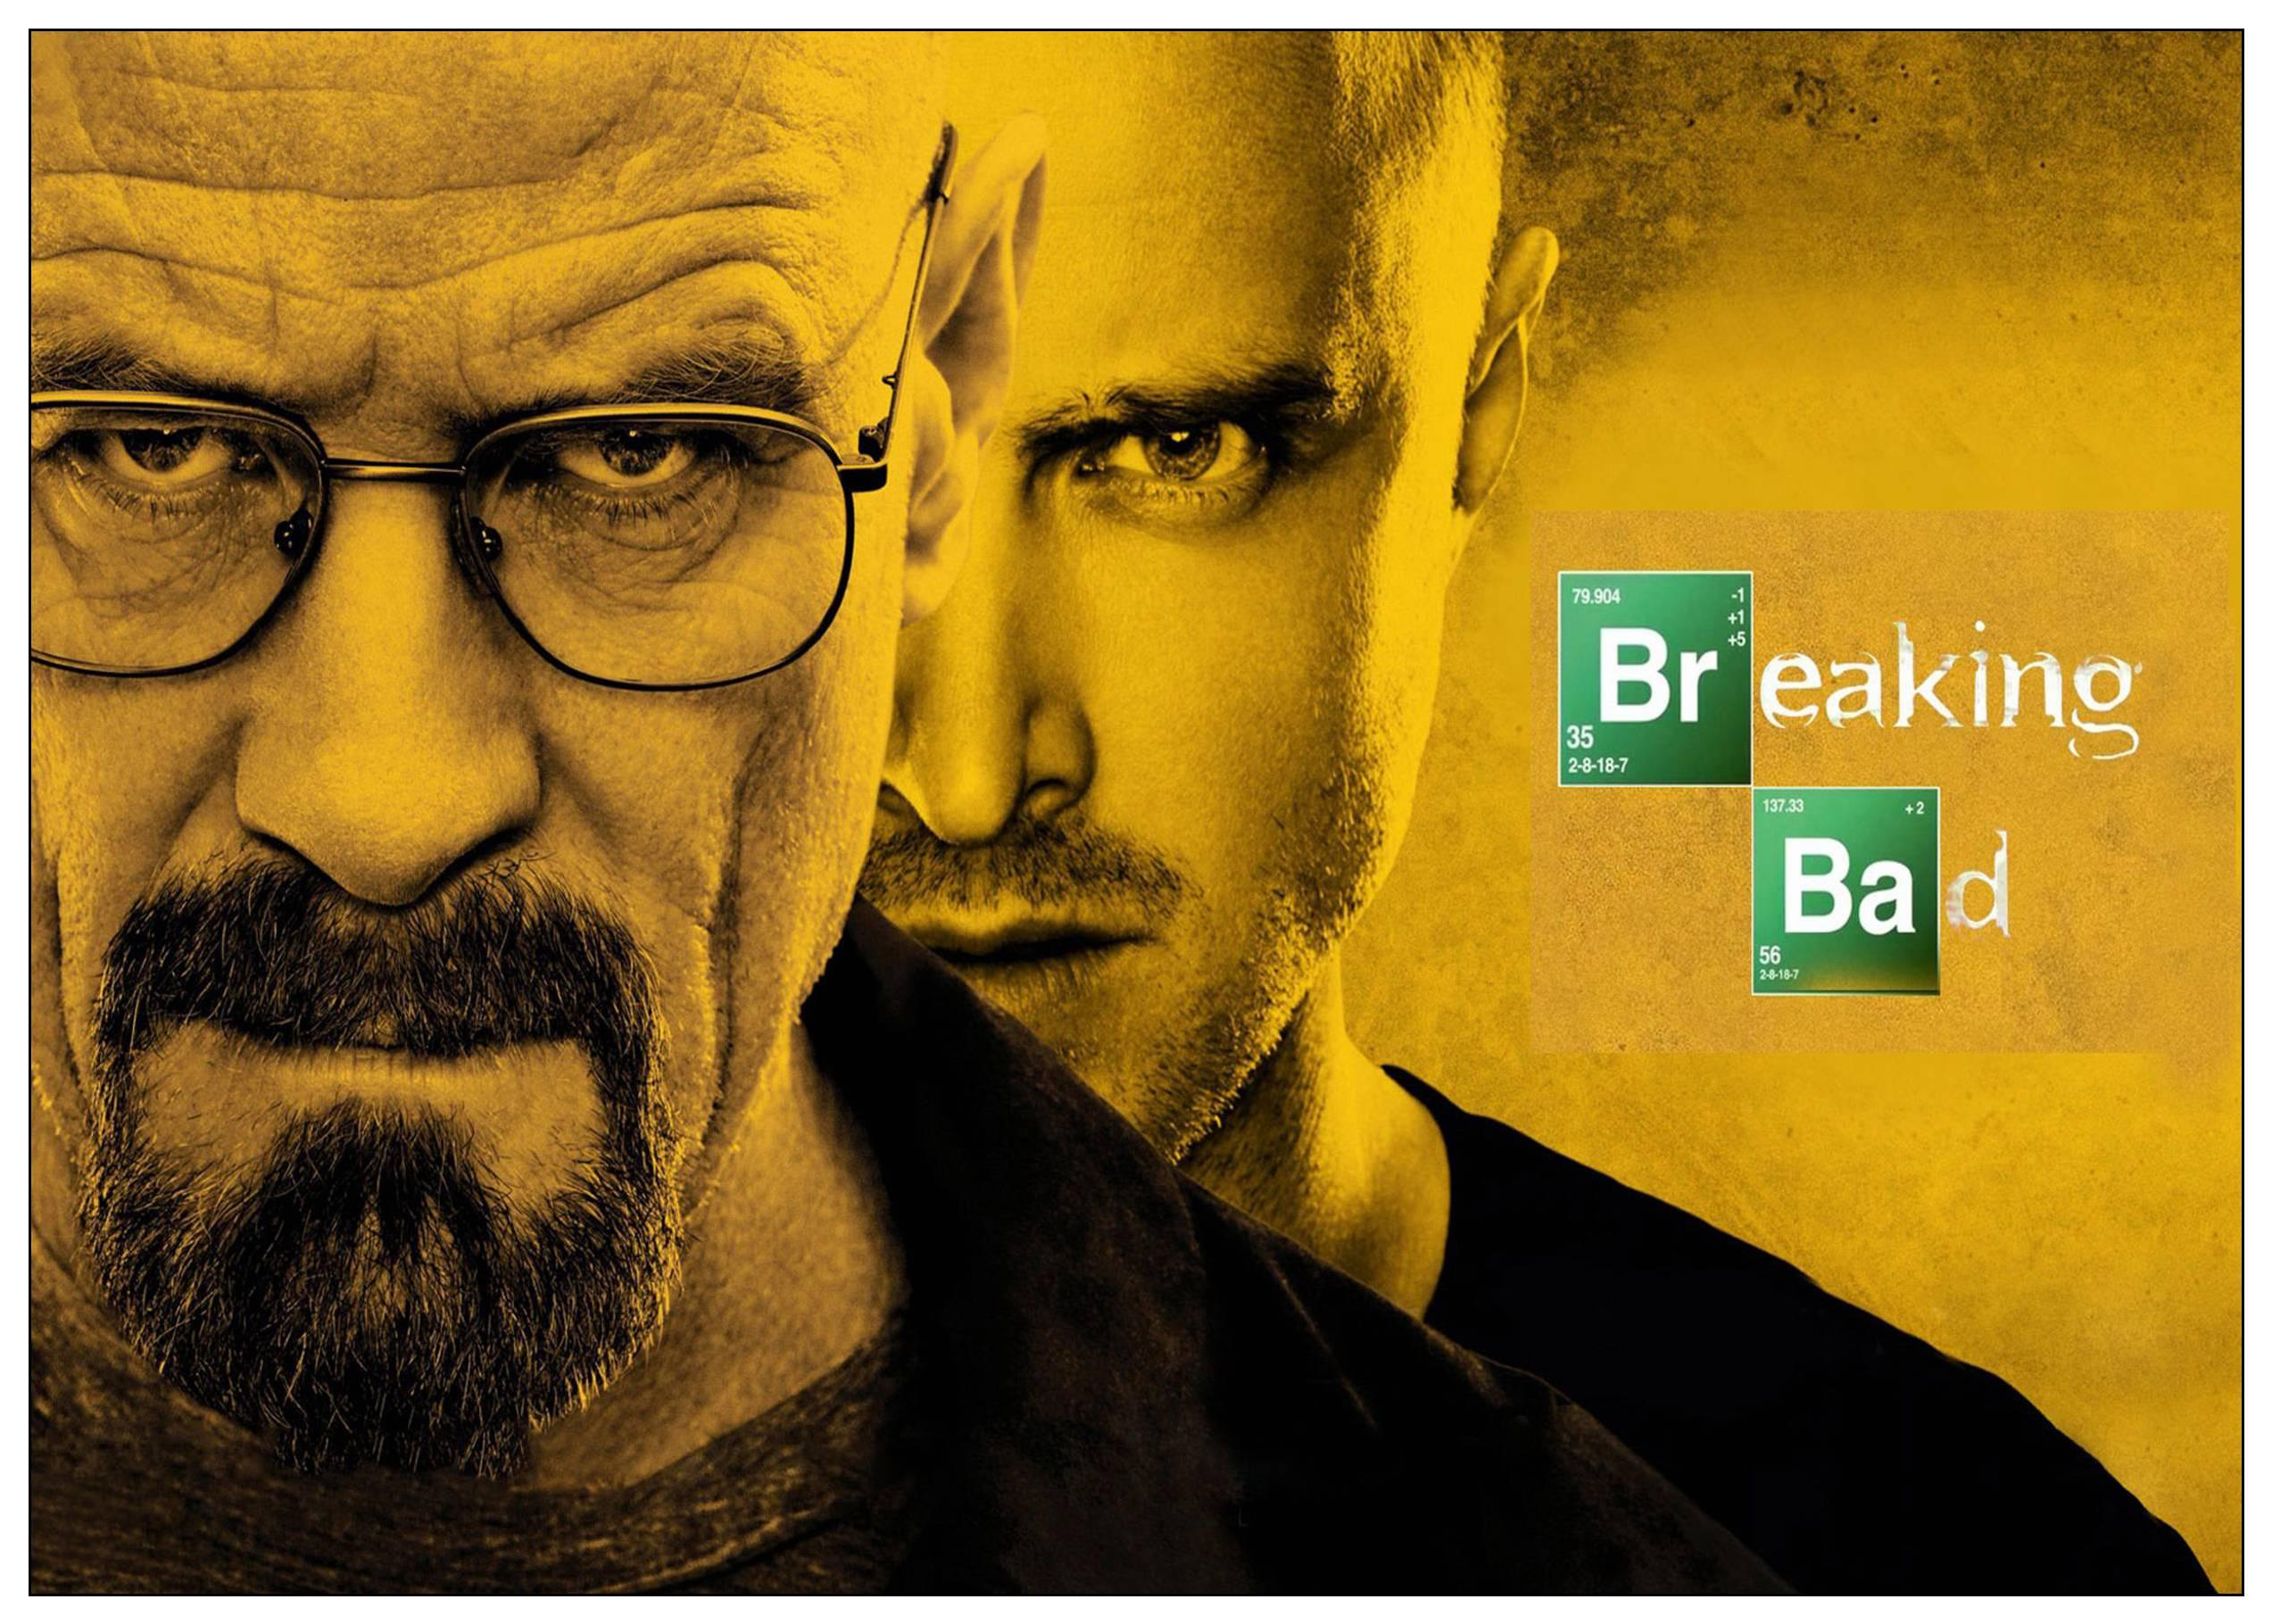 breaking bad poster of Walter and Jesse